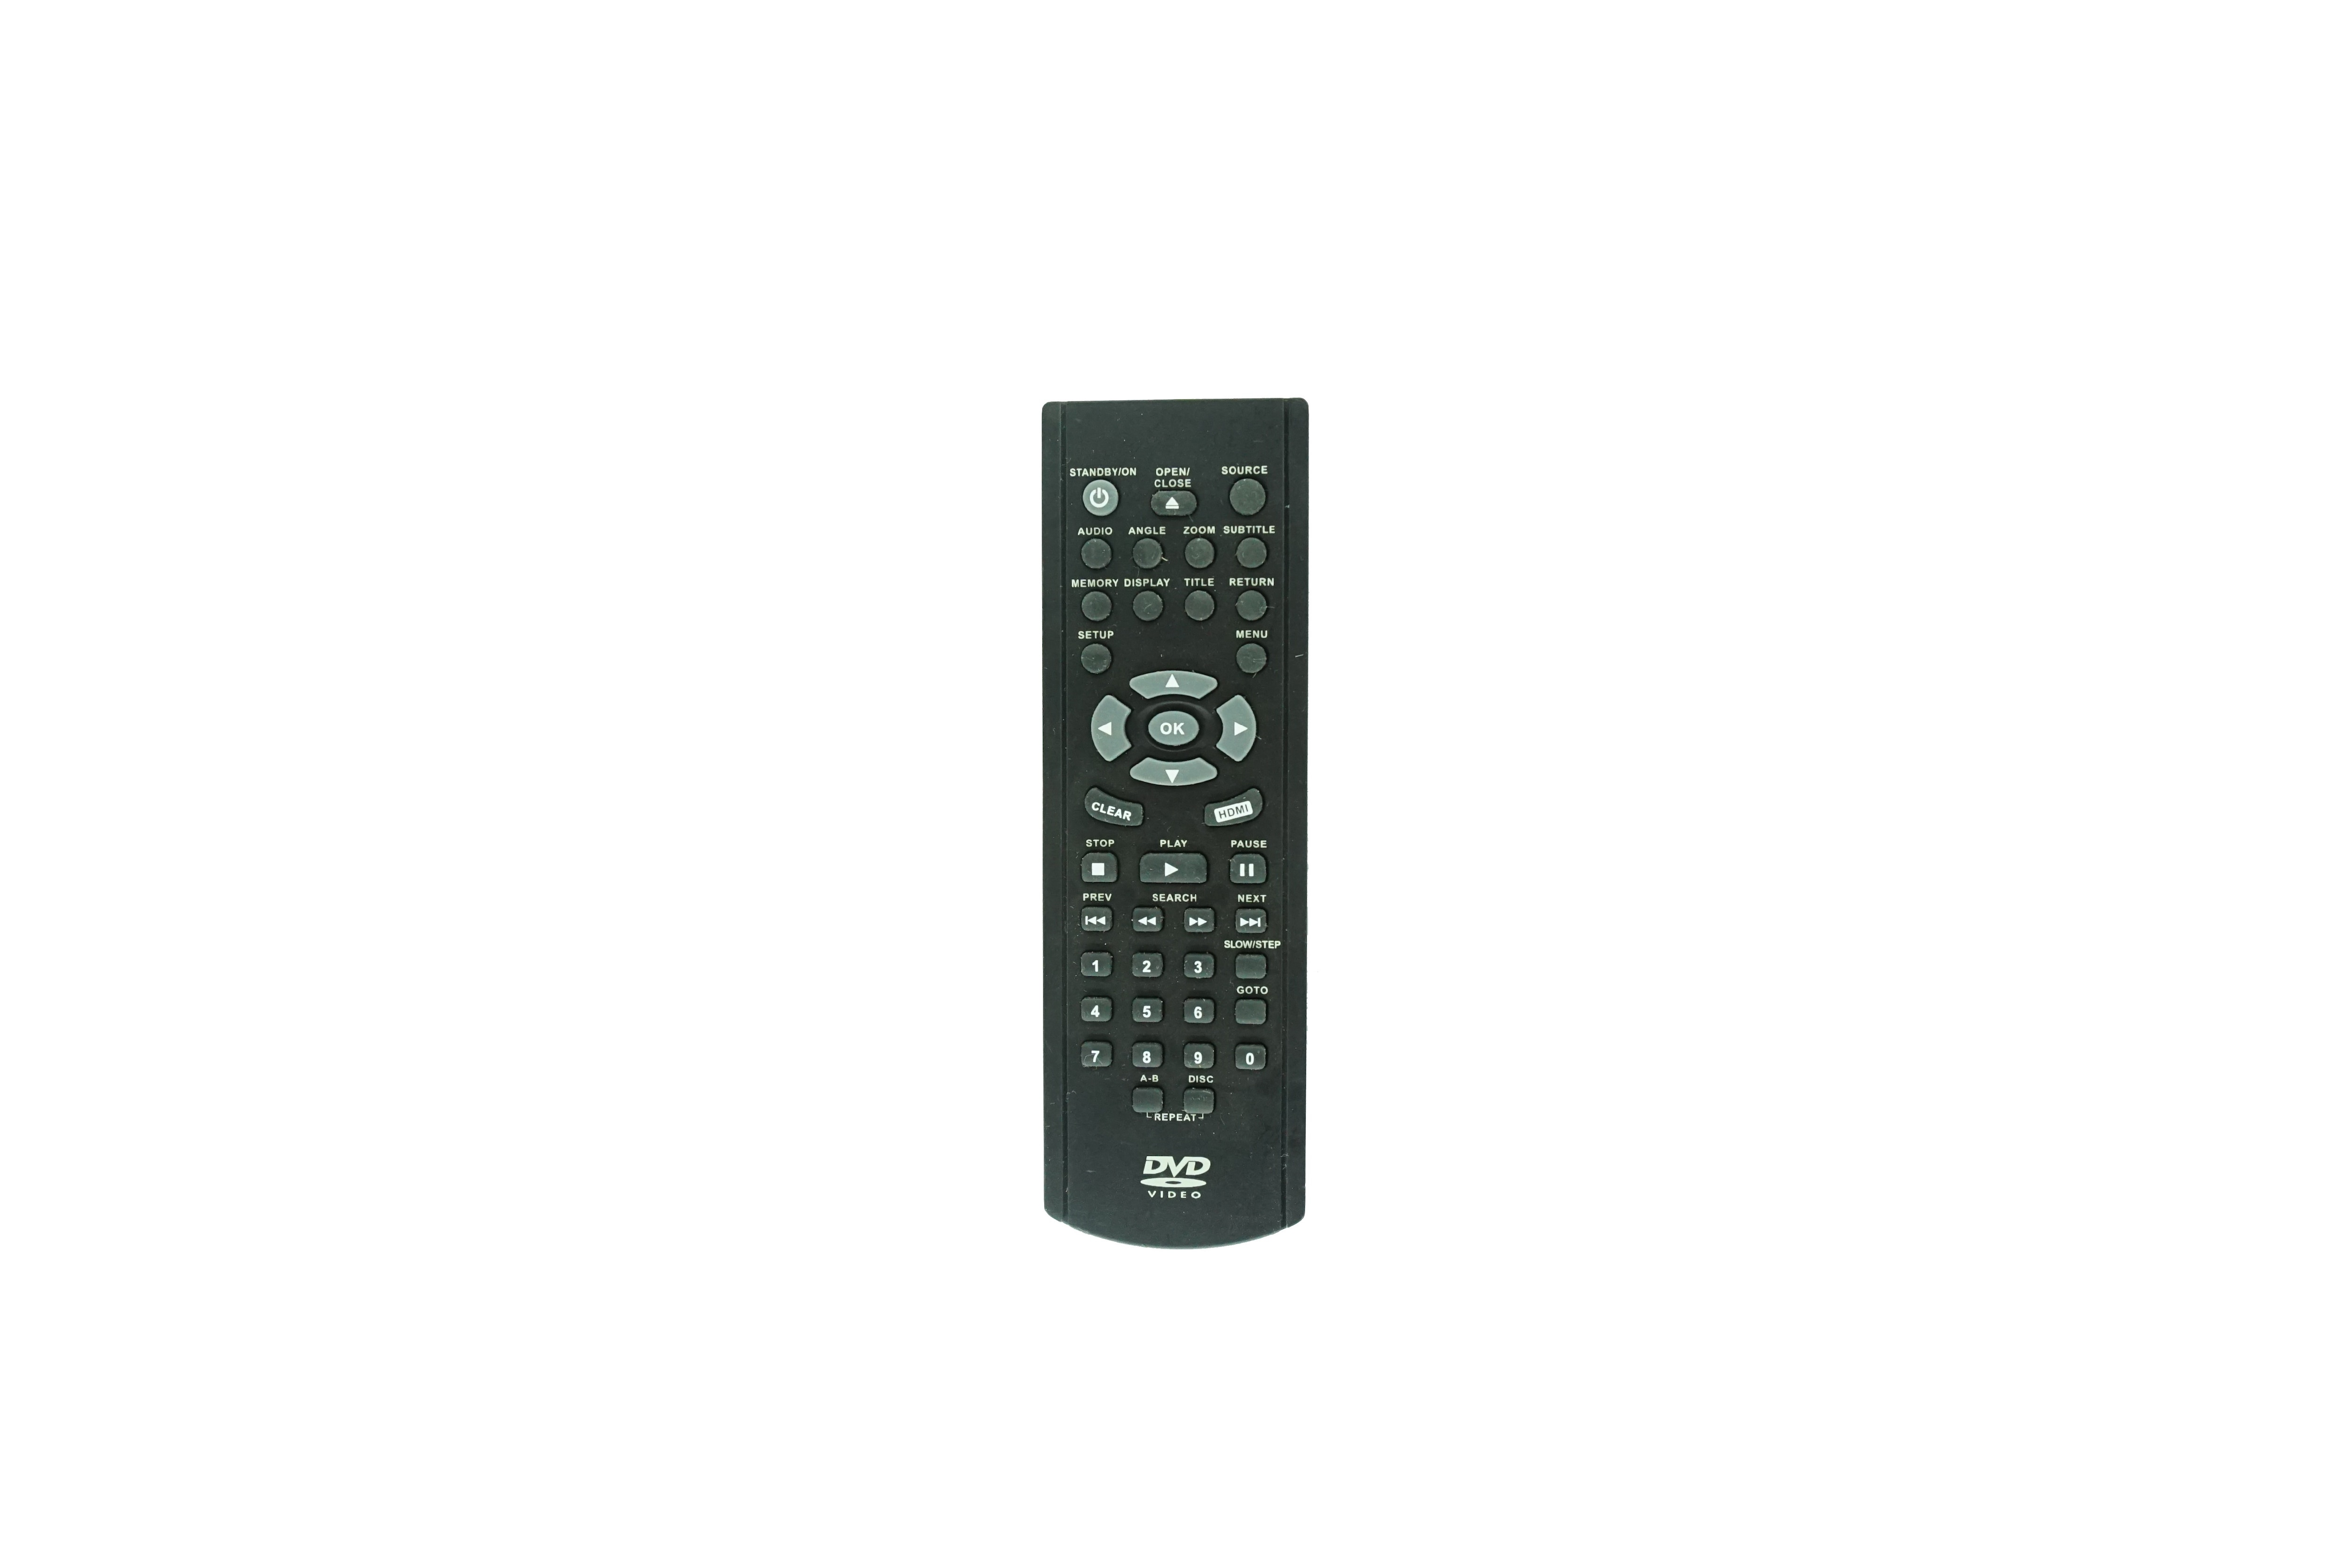 95% New Remote Control For RCA RTD396 DRC277A DRC300I DRC300IH DRC277B DRC277 5.1 DVD Home Theater S